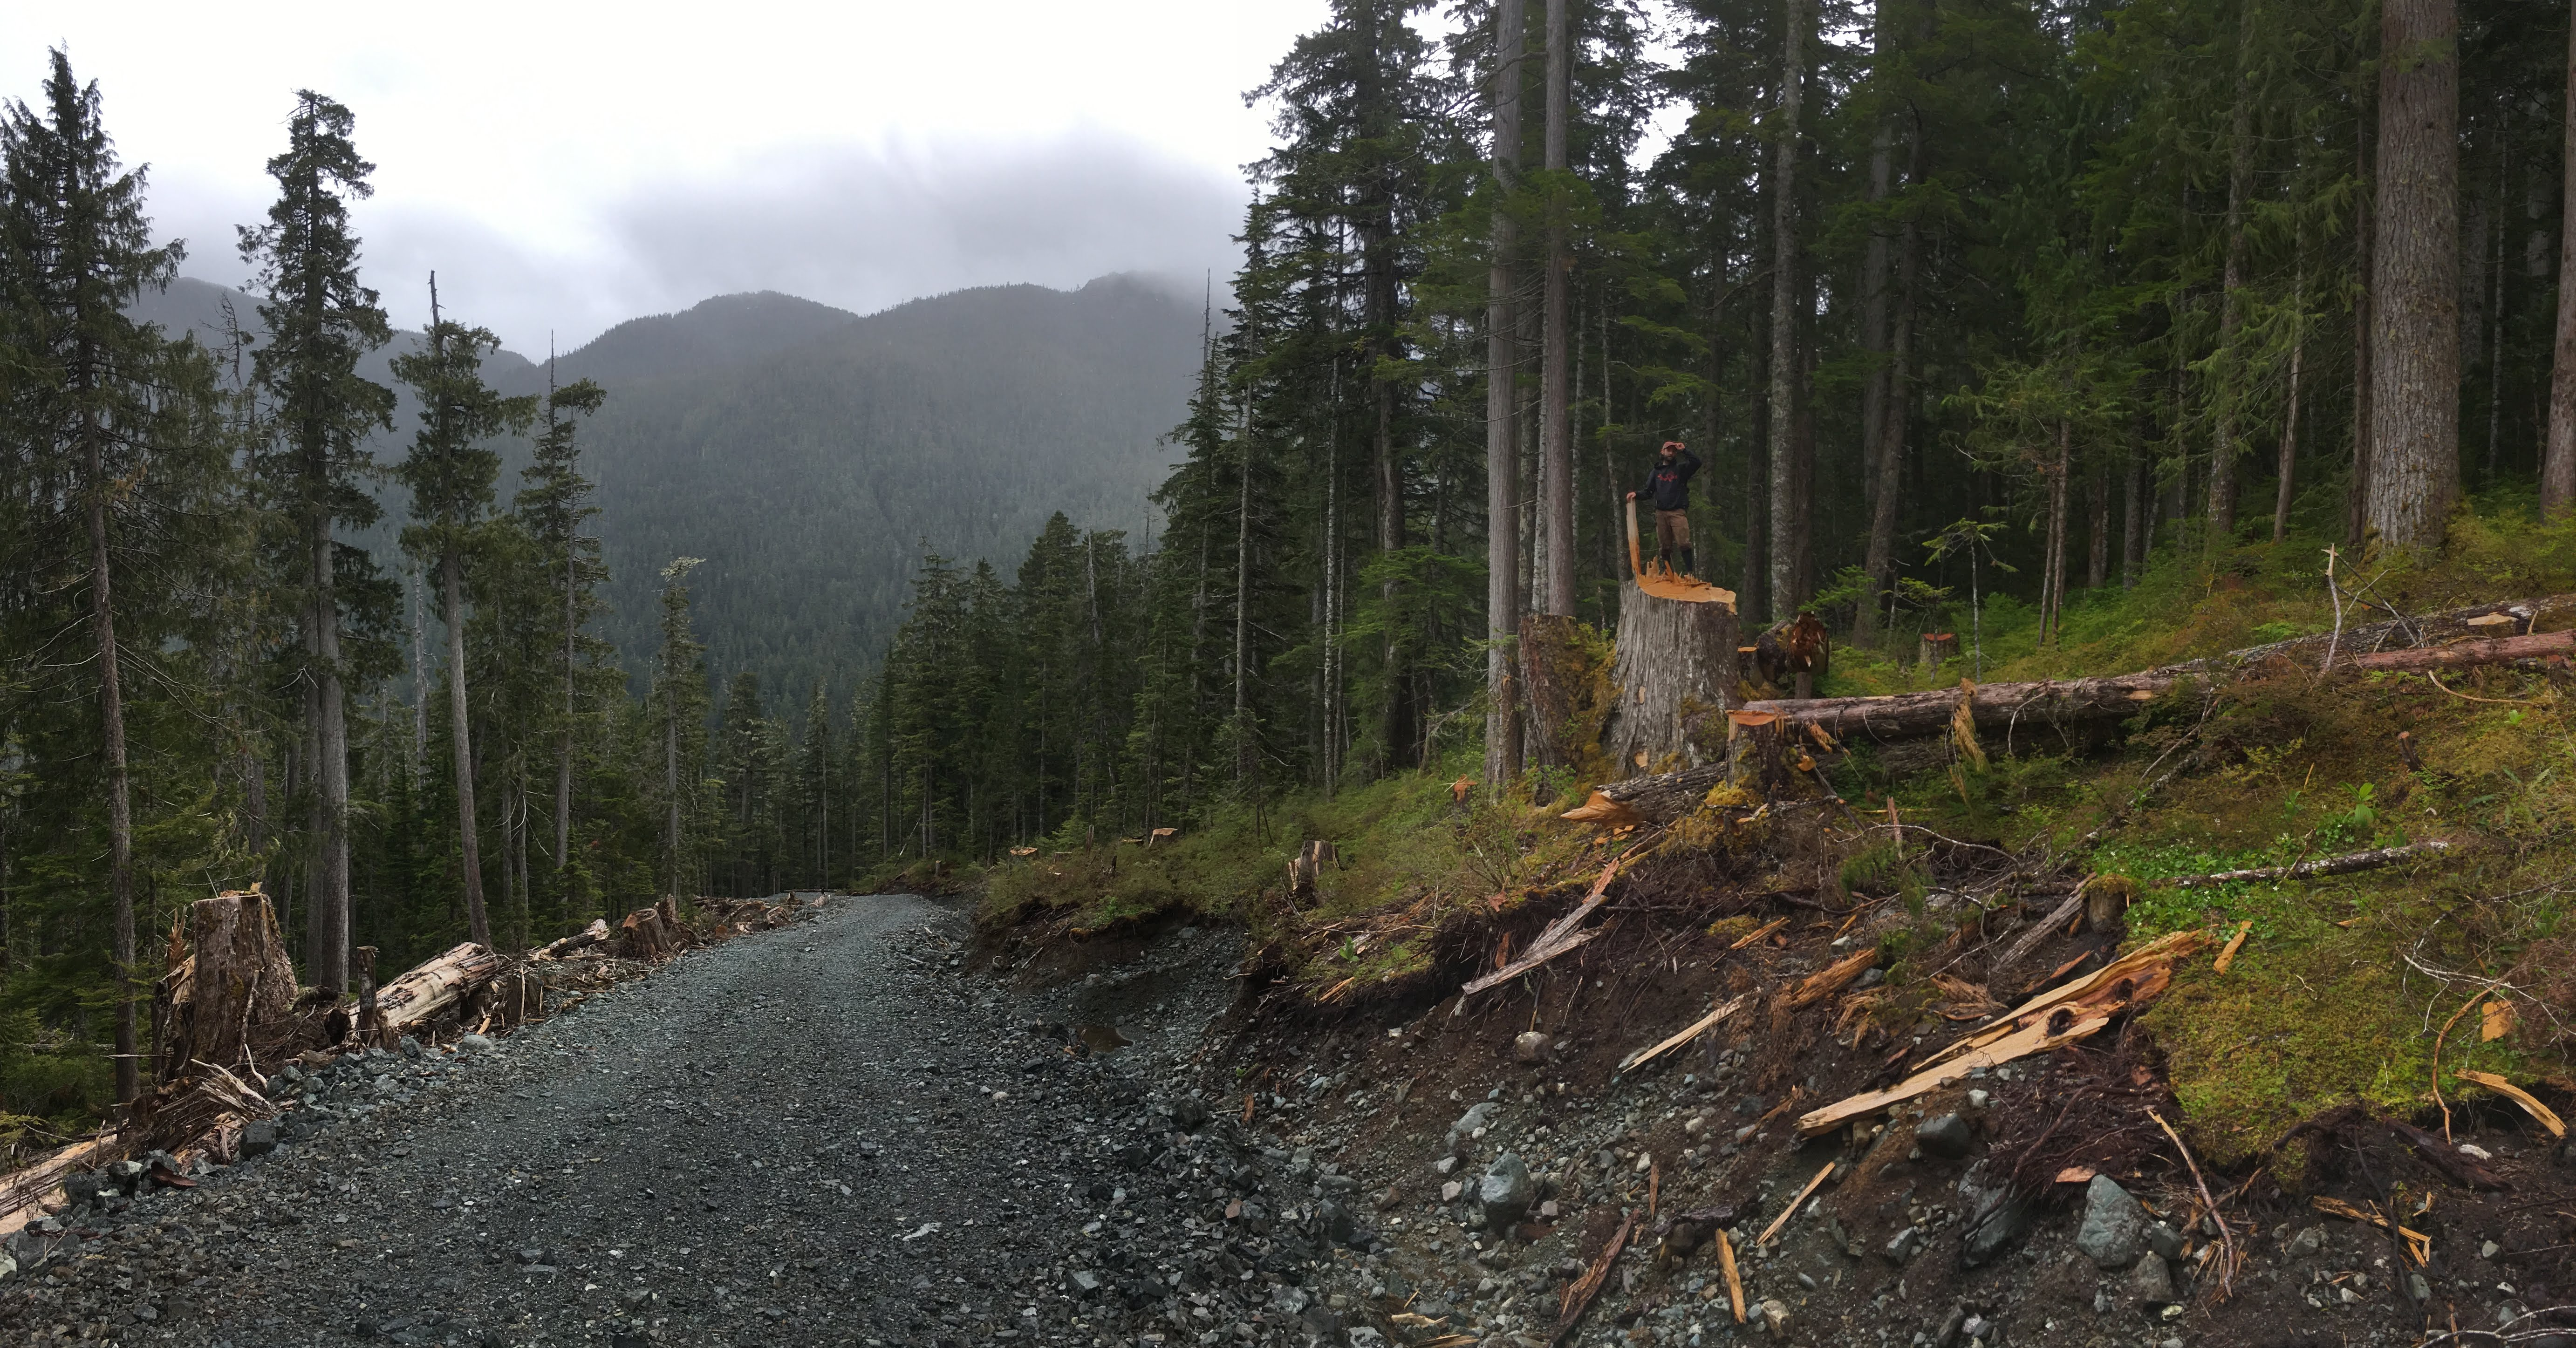 Sierra Club BC Campaigner Mark Worthing on new BCTS logging road in Schmidt Creek